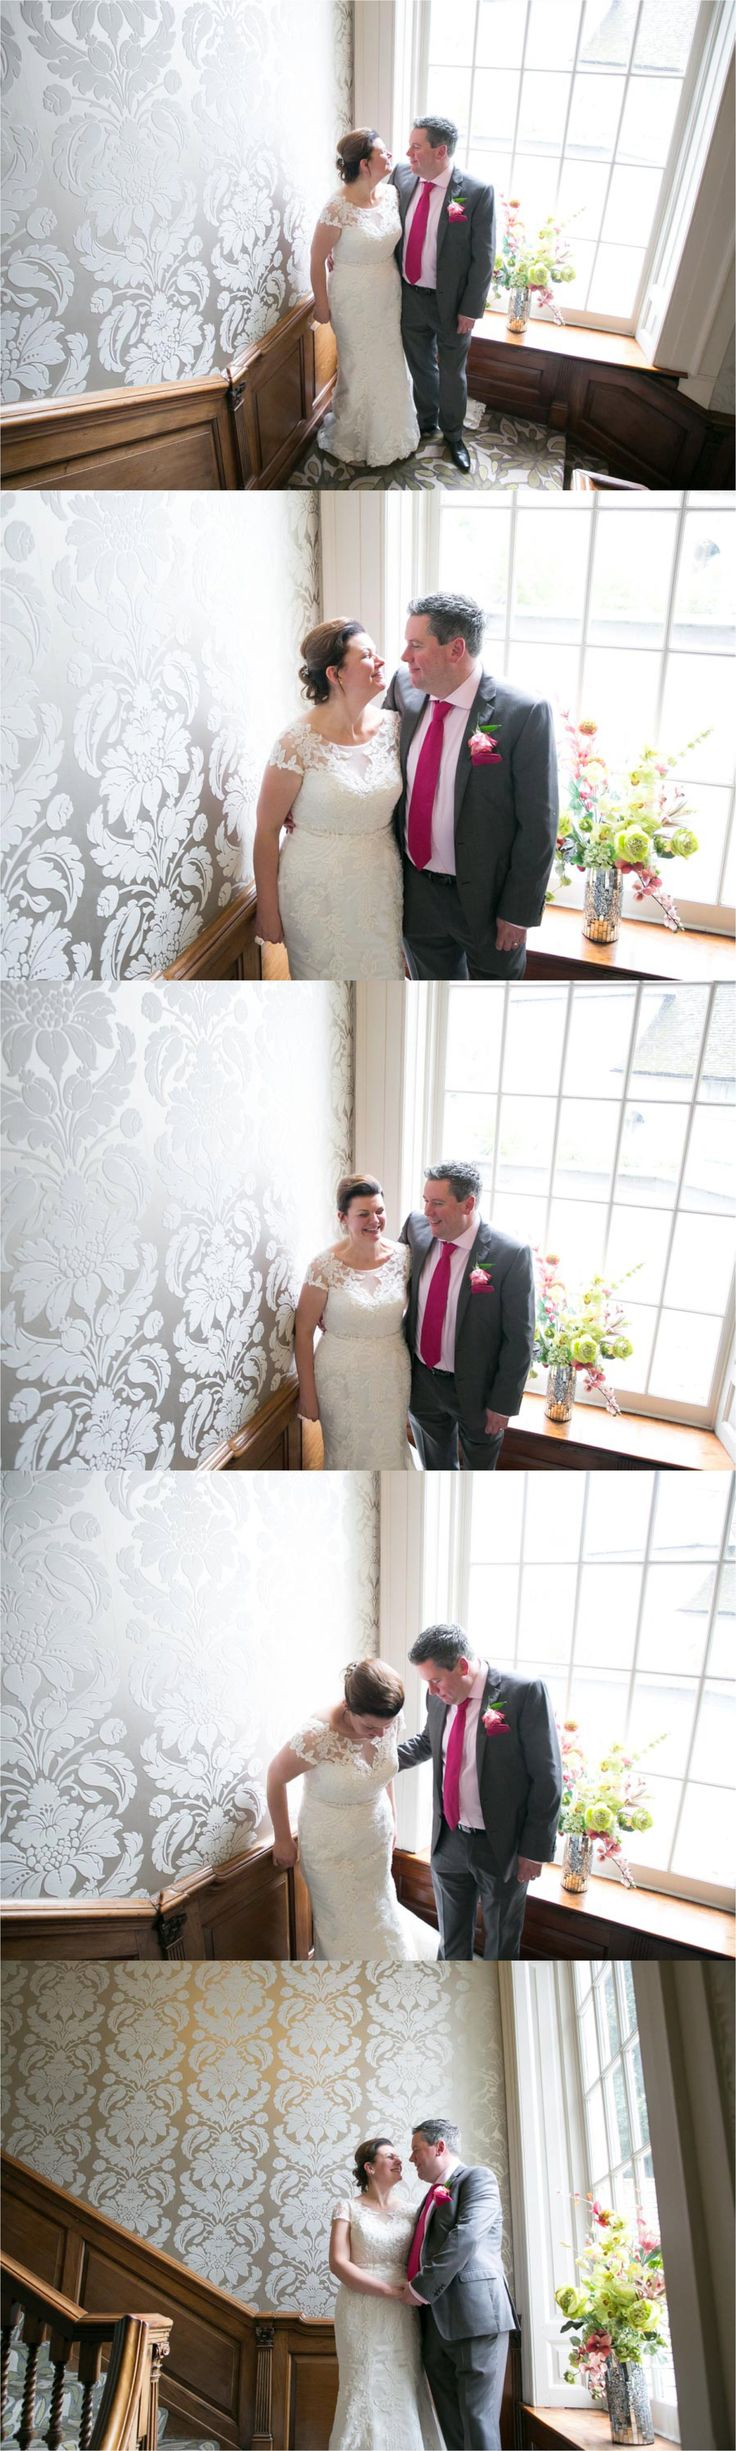 large window at mildenhall hotel wedding with happy couple